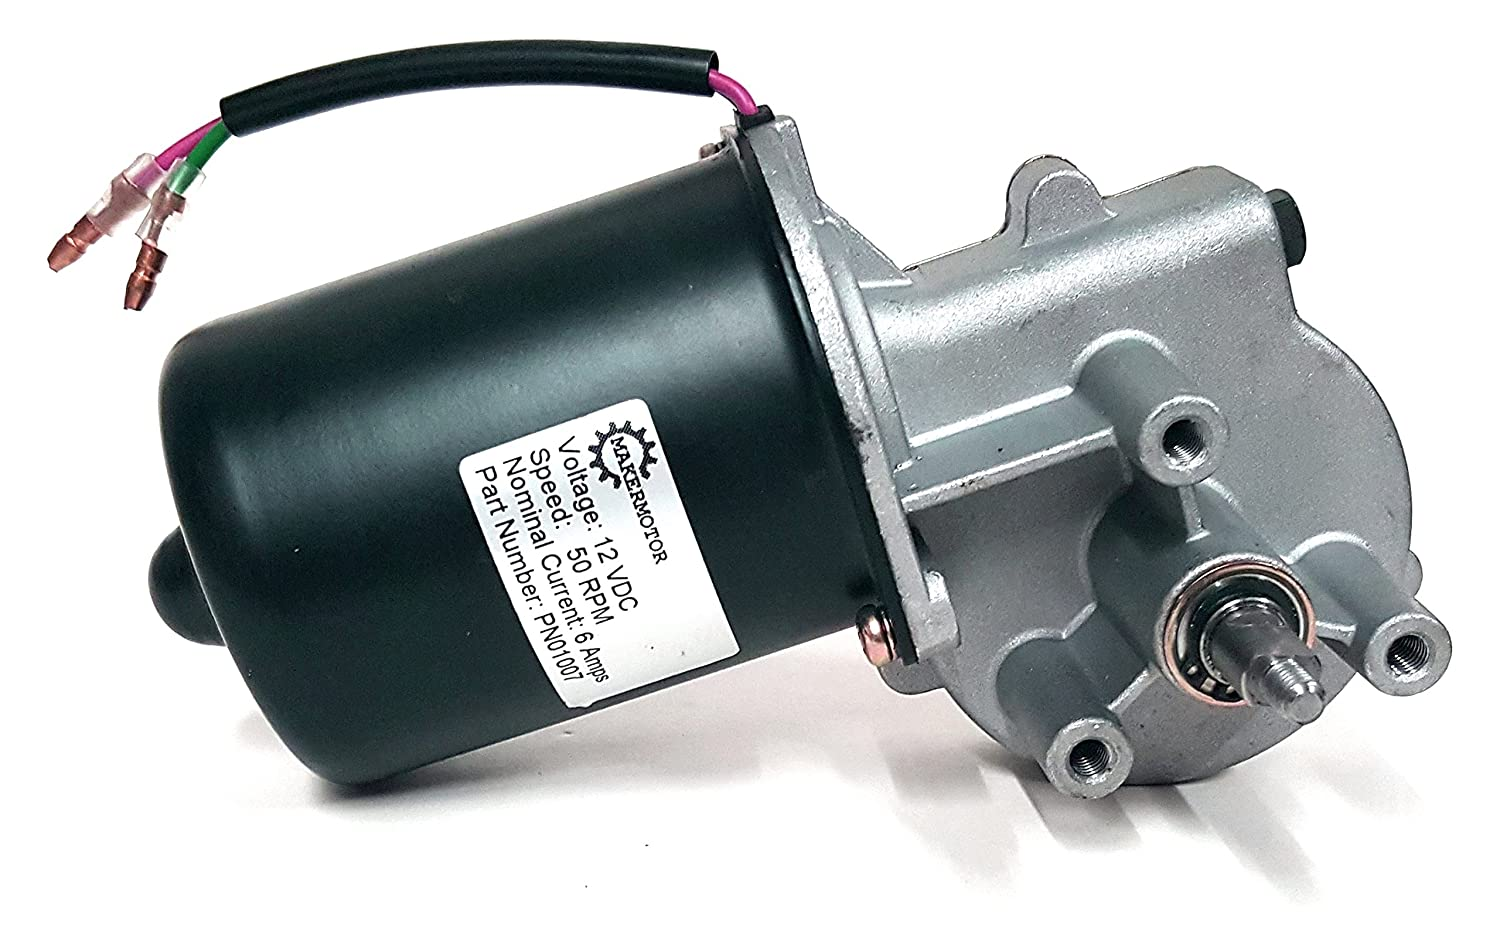 electric motor. Makermotor 10mm 2-flat Shaft 12V DC Reversible Electric Gear Motor 50 RPM - Amazon.com